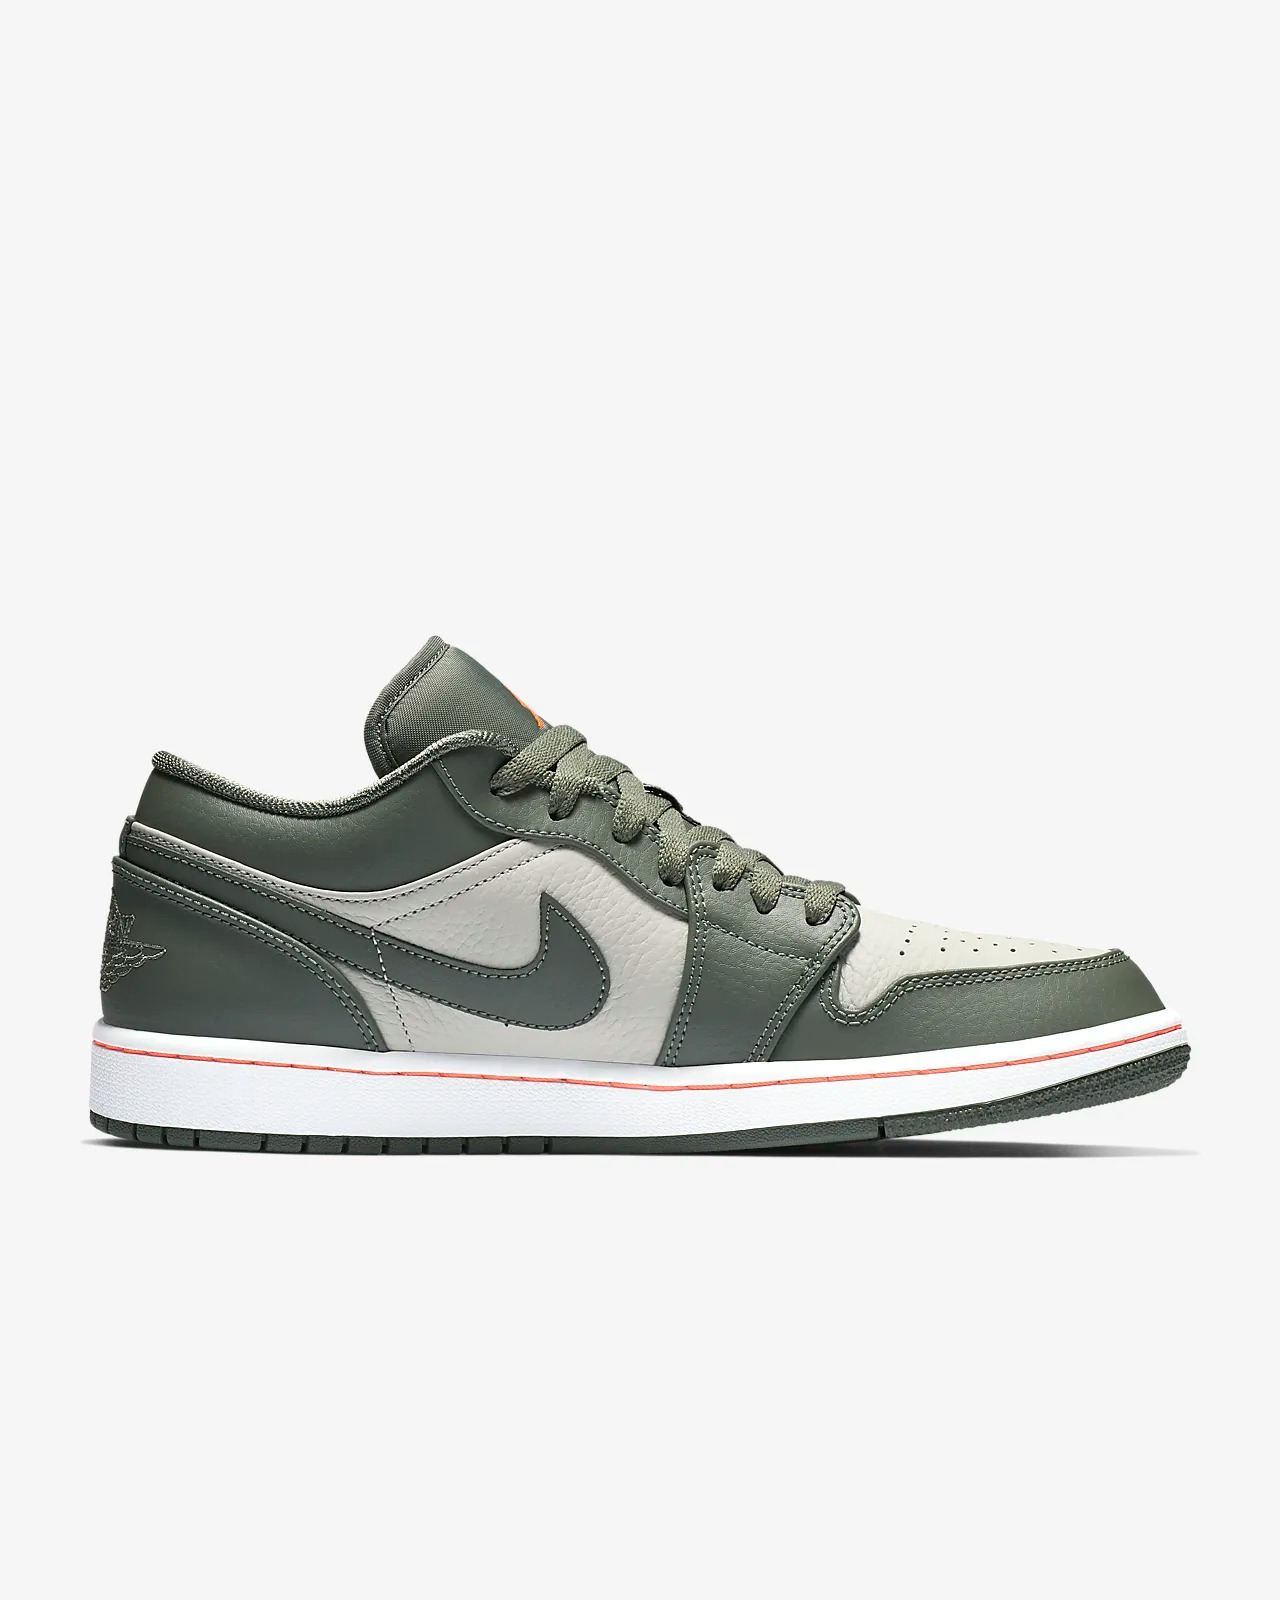 new style 691a5 c31d1 Air Jordan 1 Low Military Green - SPORT SHOES Lifestyle Shoes   Sneakers -  Superfanas.lt